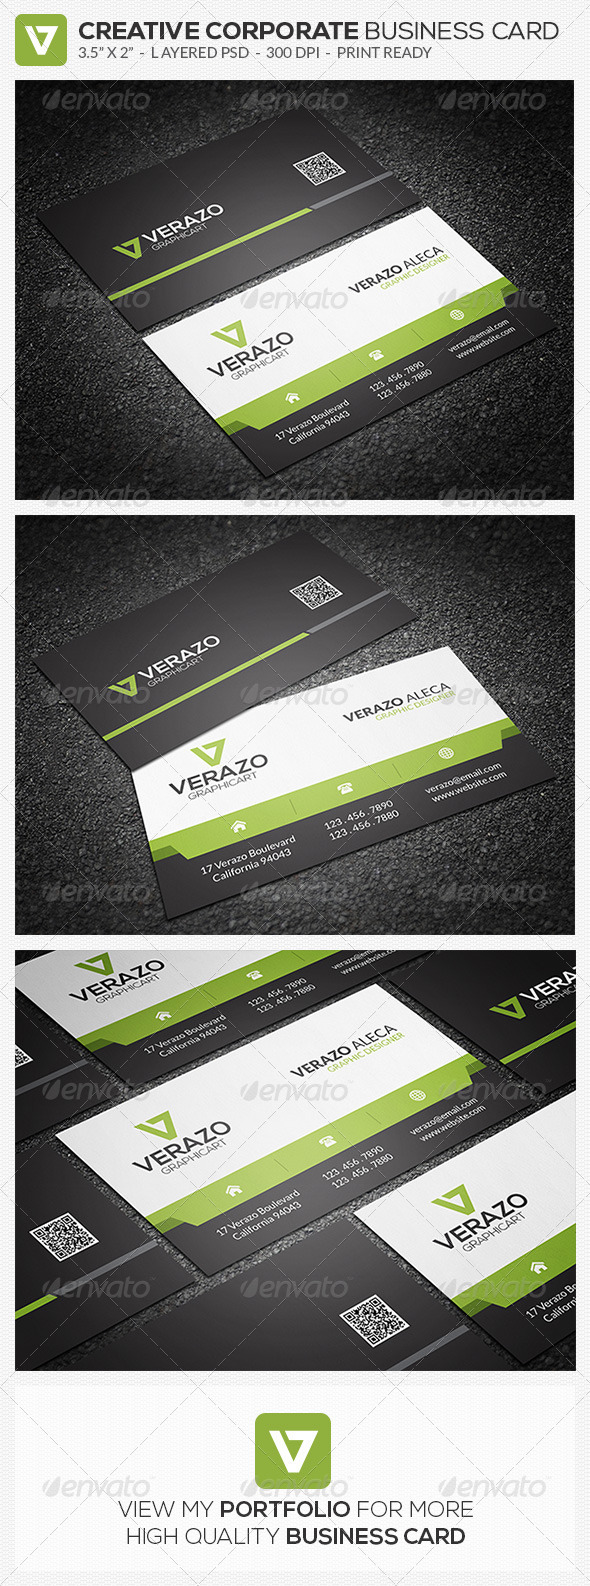 GraphicRiver Creative Corporate Business Card 55 8540111